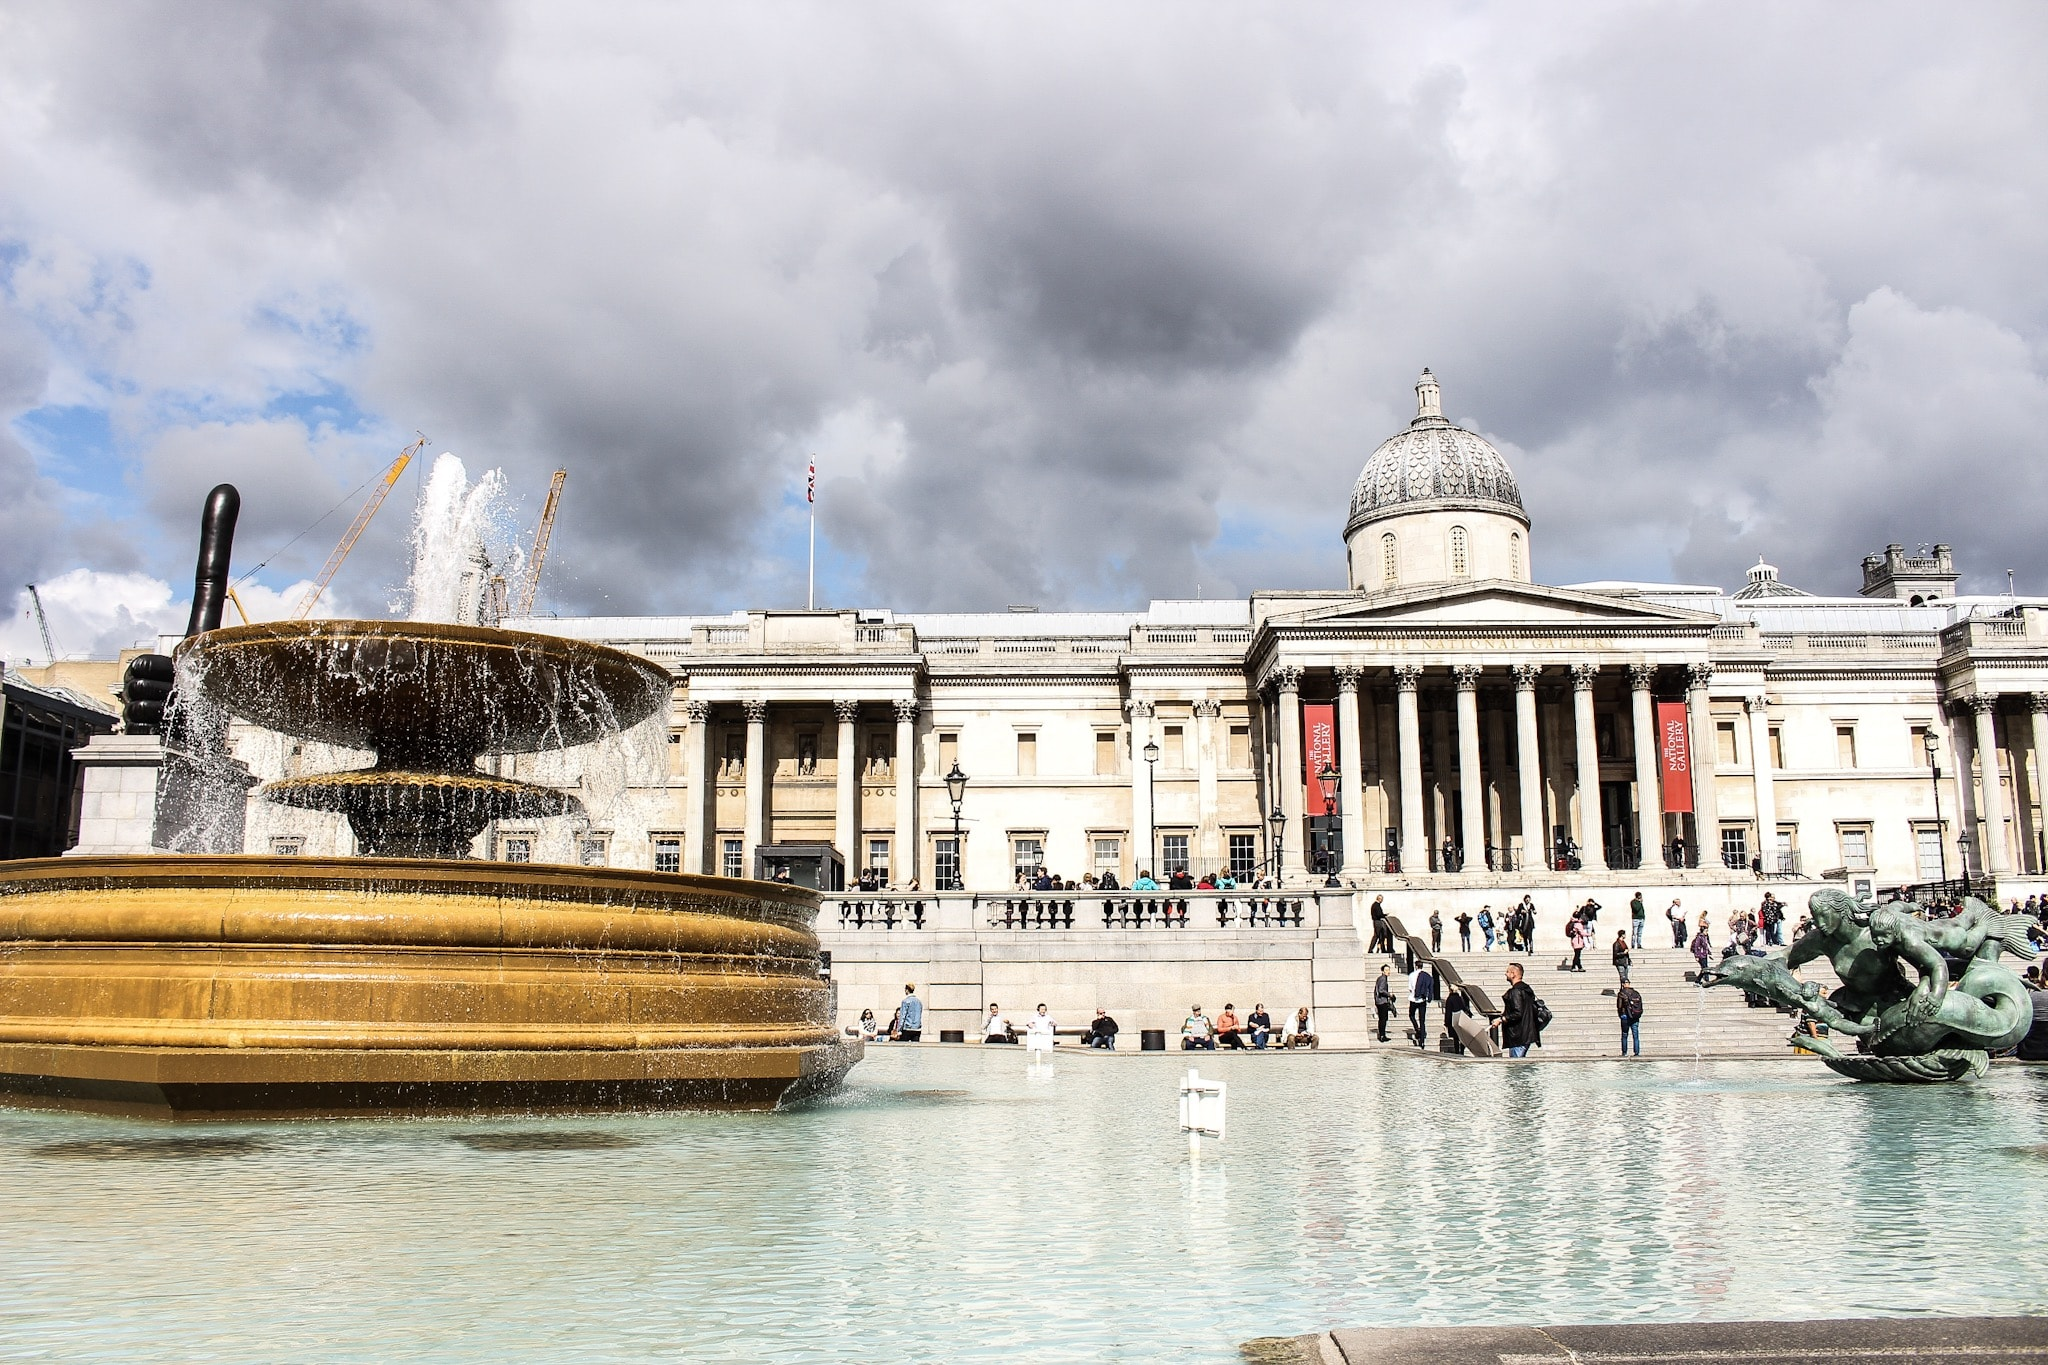 2 Tage in London - Trafalgar Square